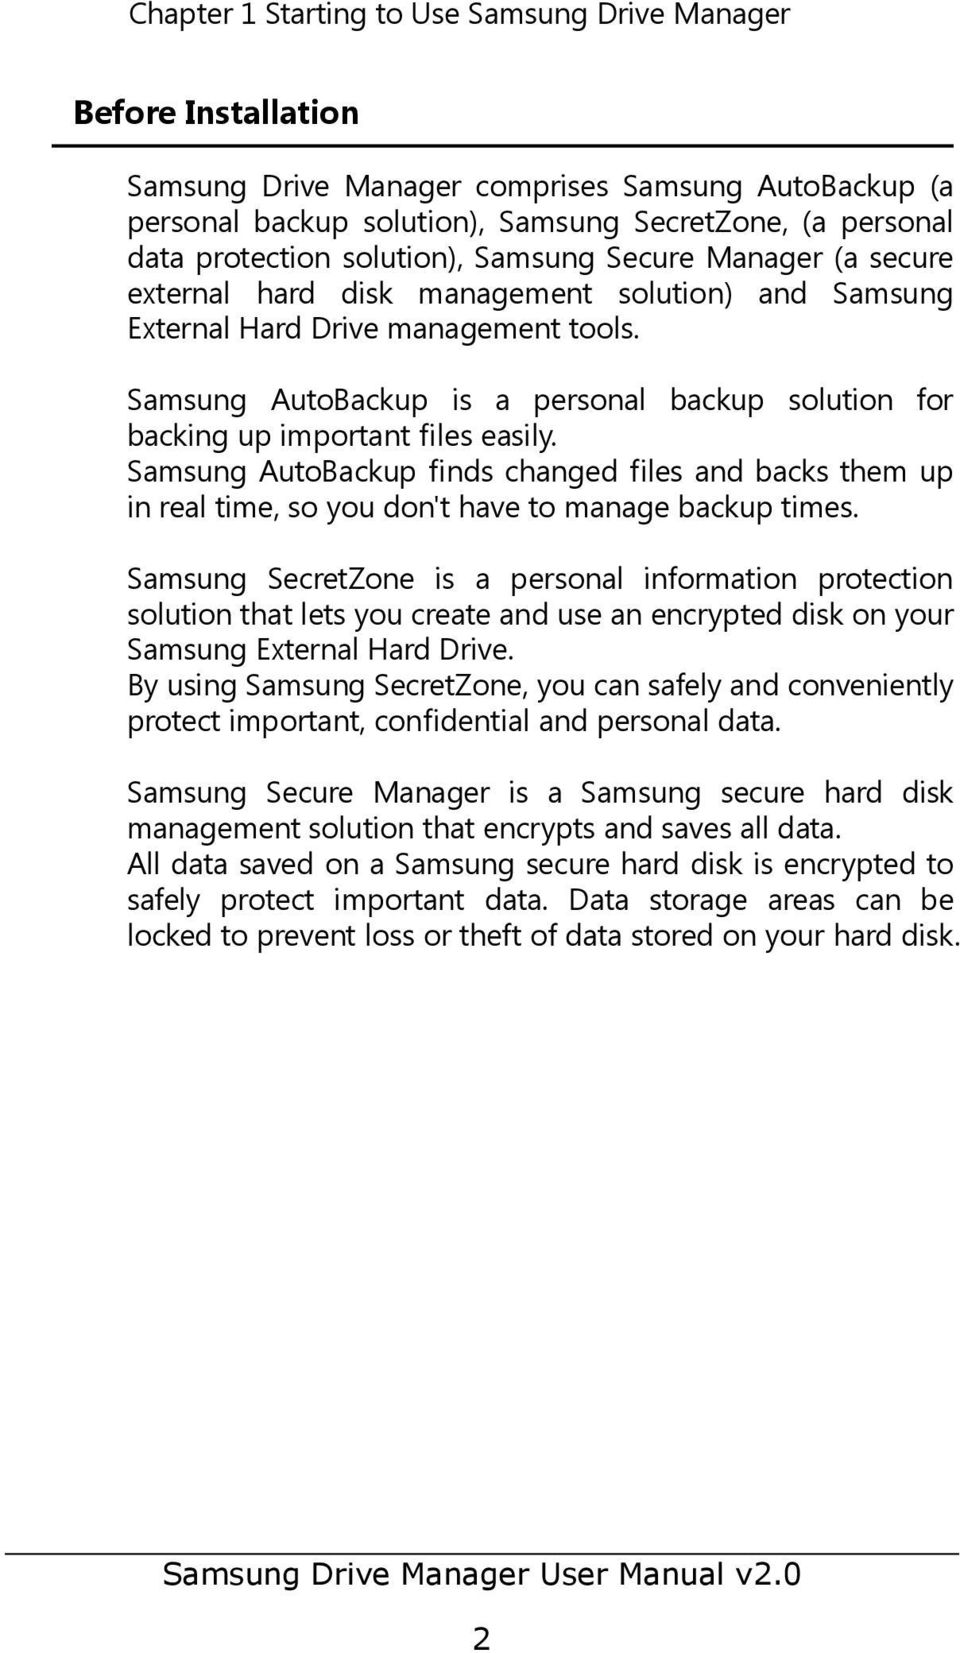 Samsung AutoBackup is a personal backup solution for backing up important files easily. Samsung AutoBackup finds changed files and backs them up in real time, so you don't have to manage backup times.